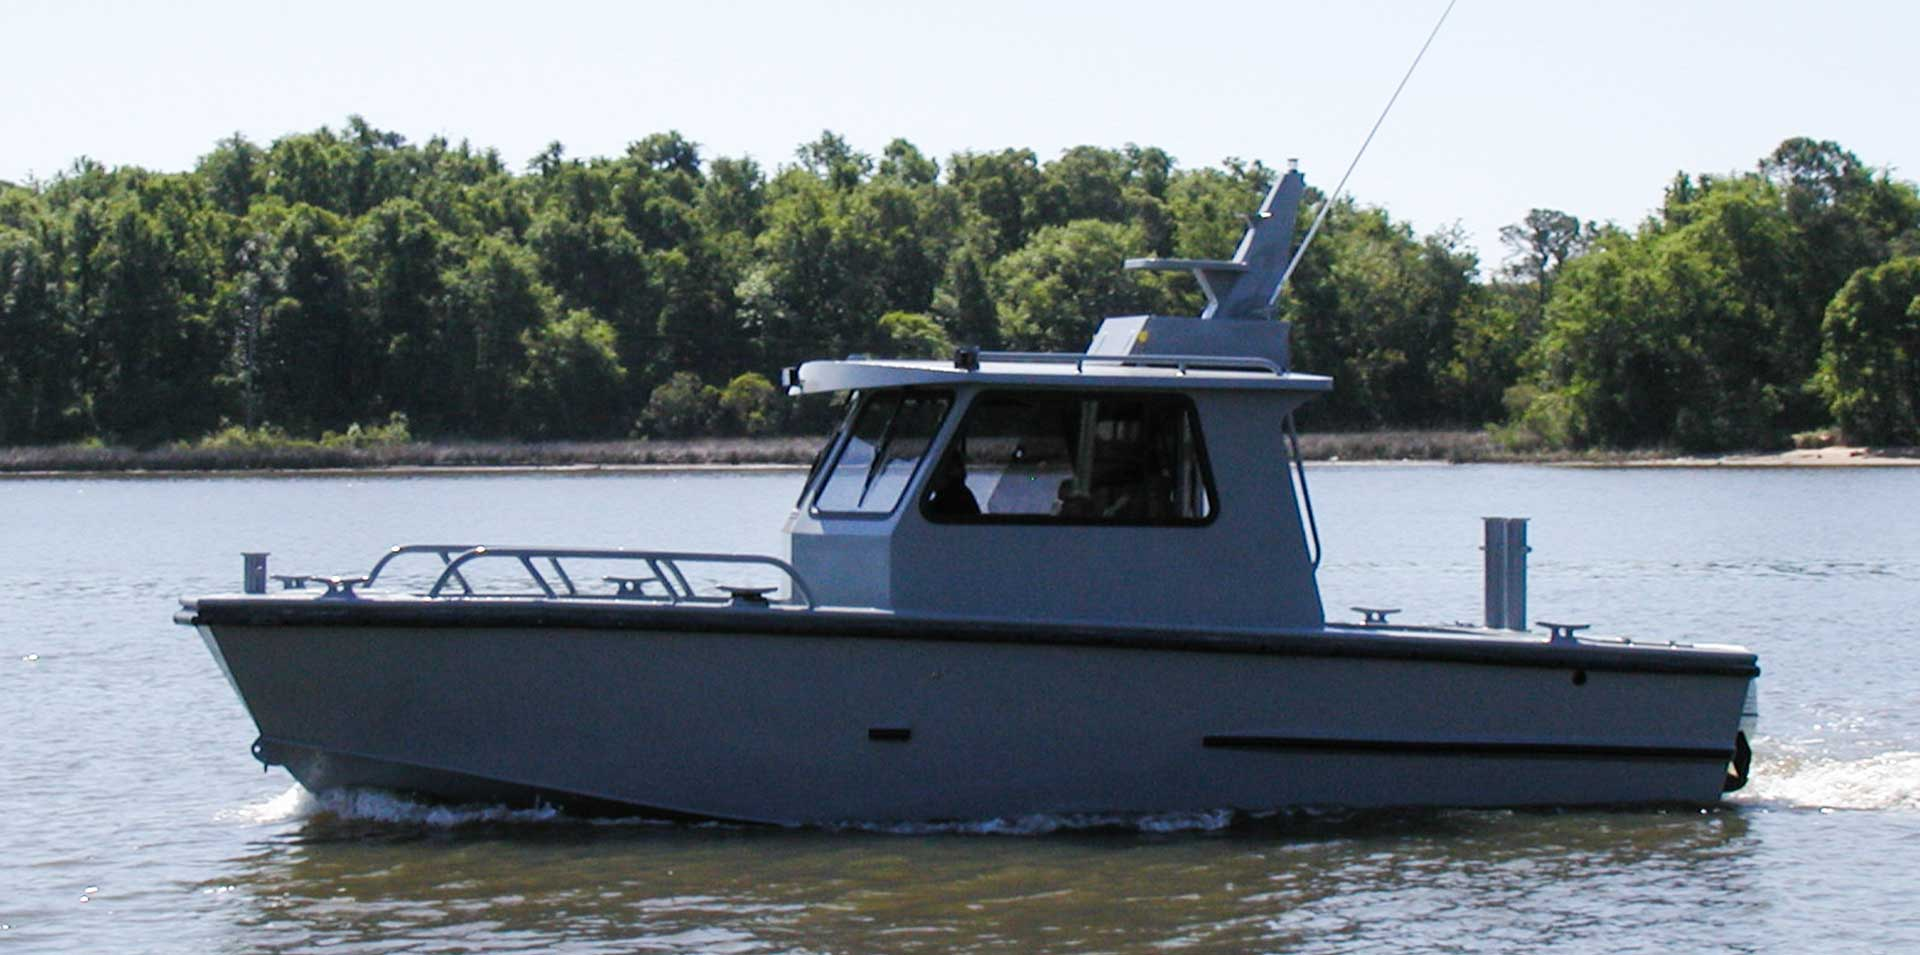 Silver Ships Endeavor Series workboat with full pilothouse